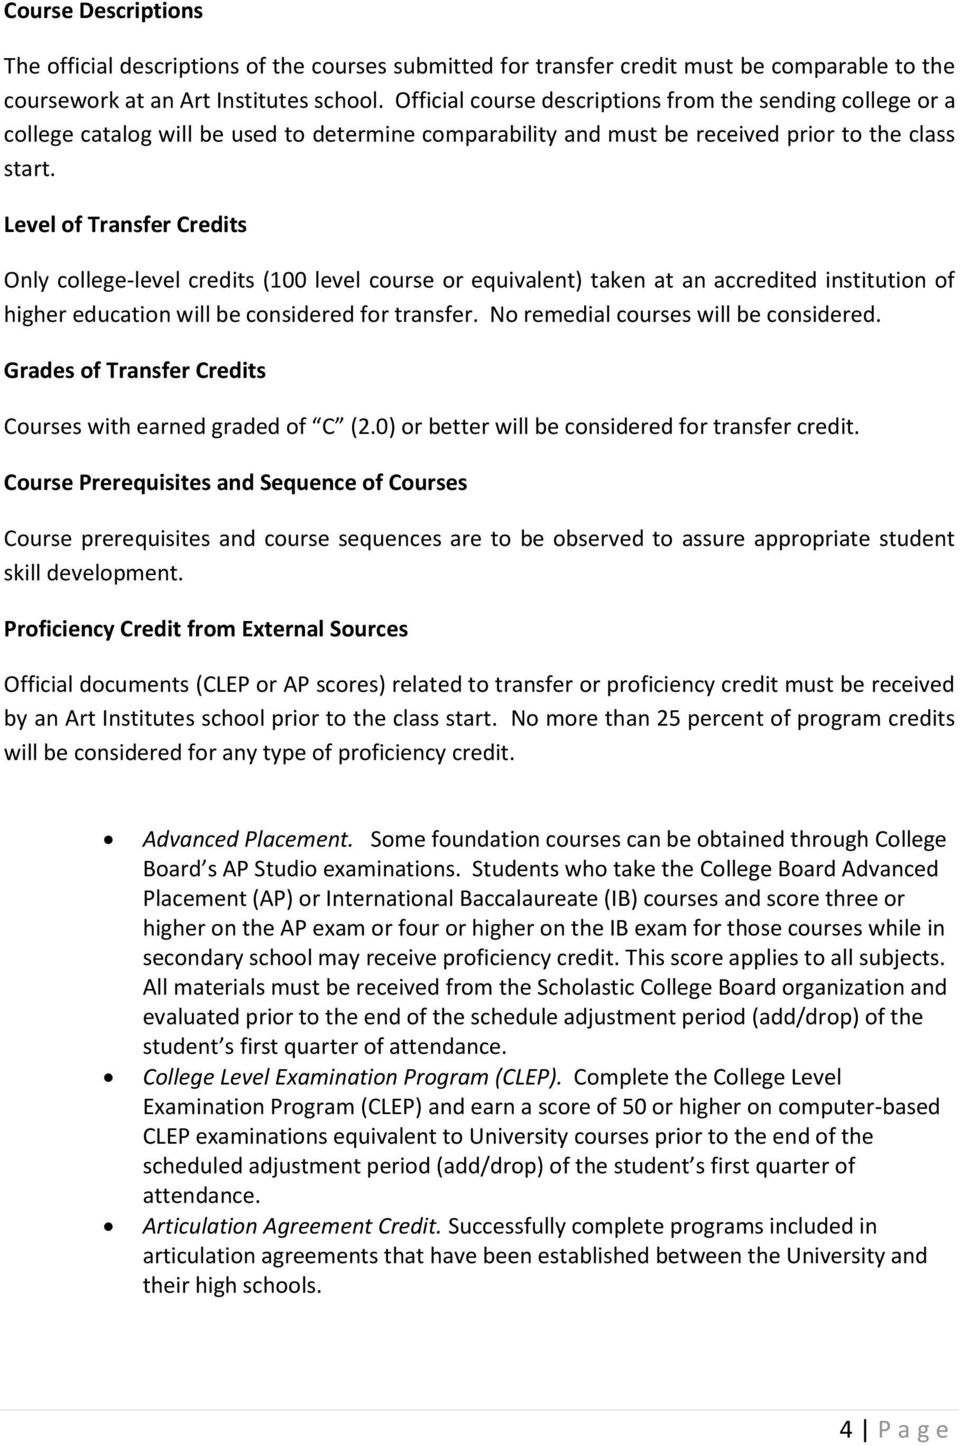 Level of Transfer Credits Only college-level credits (100 level course or equivalent) taken at an accredited institution of higher education will be considered for transfer.